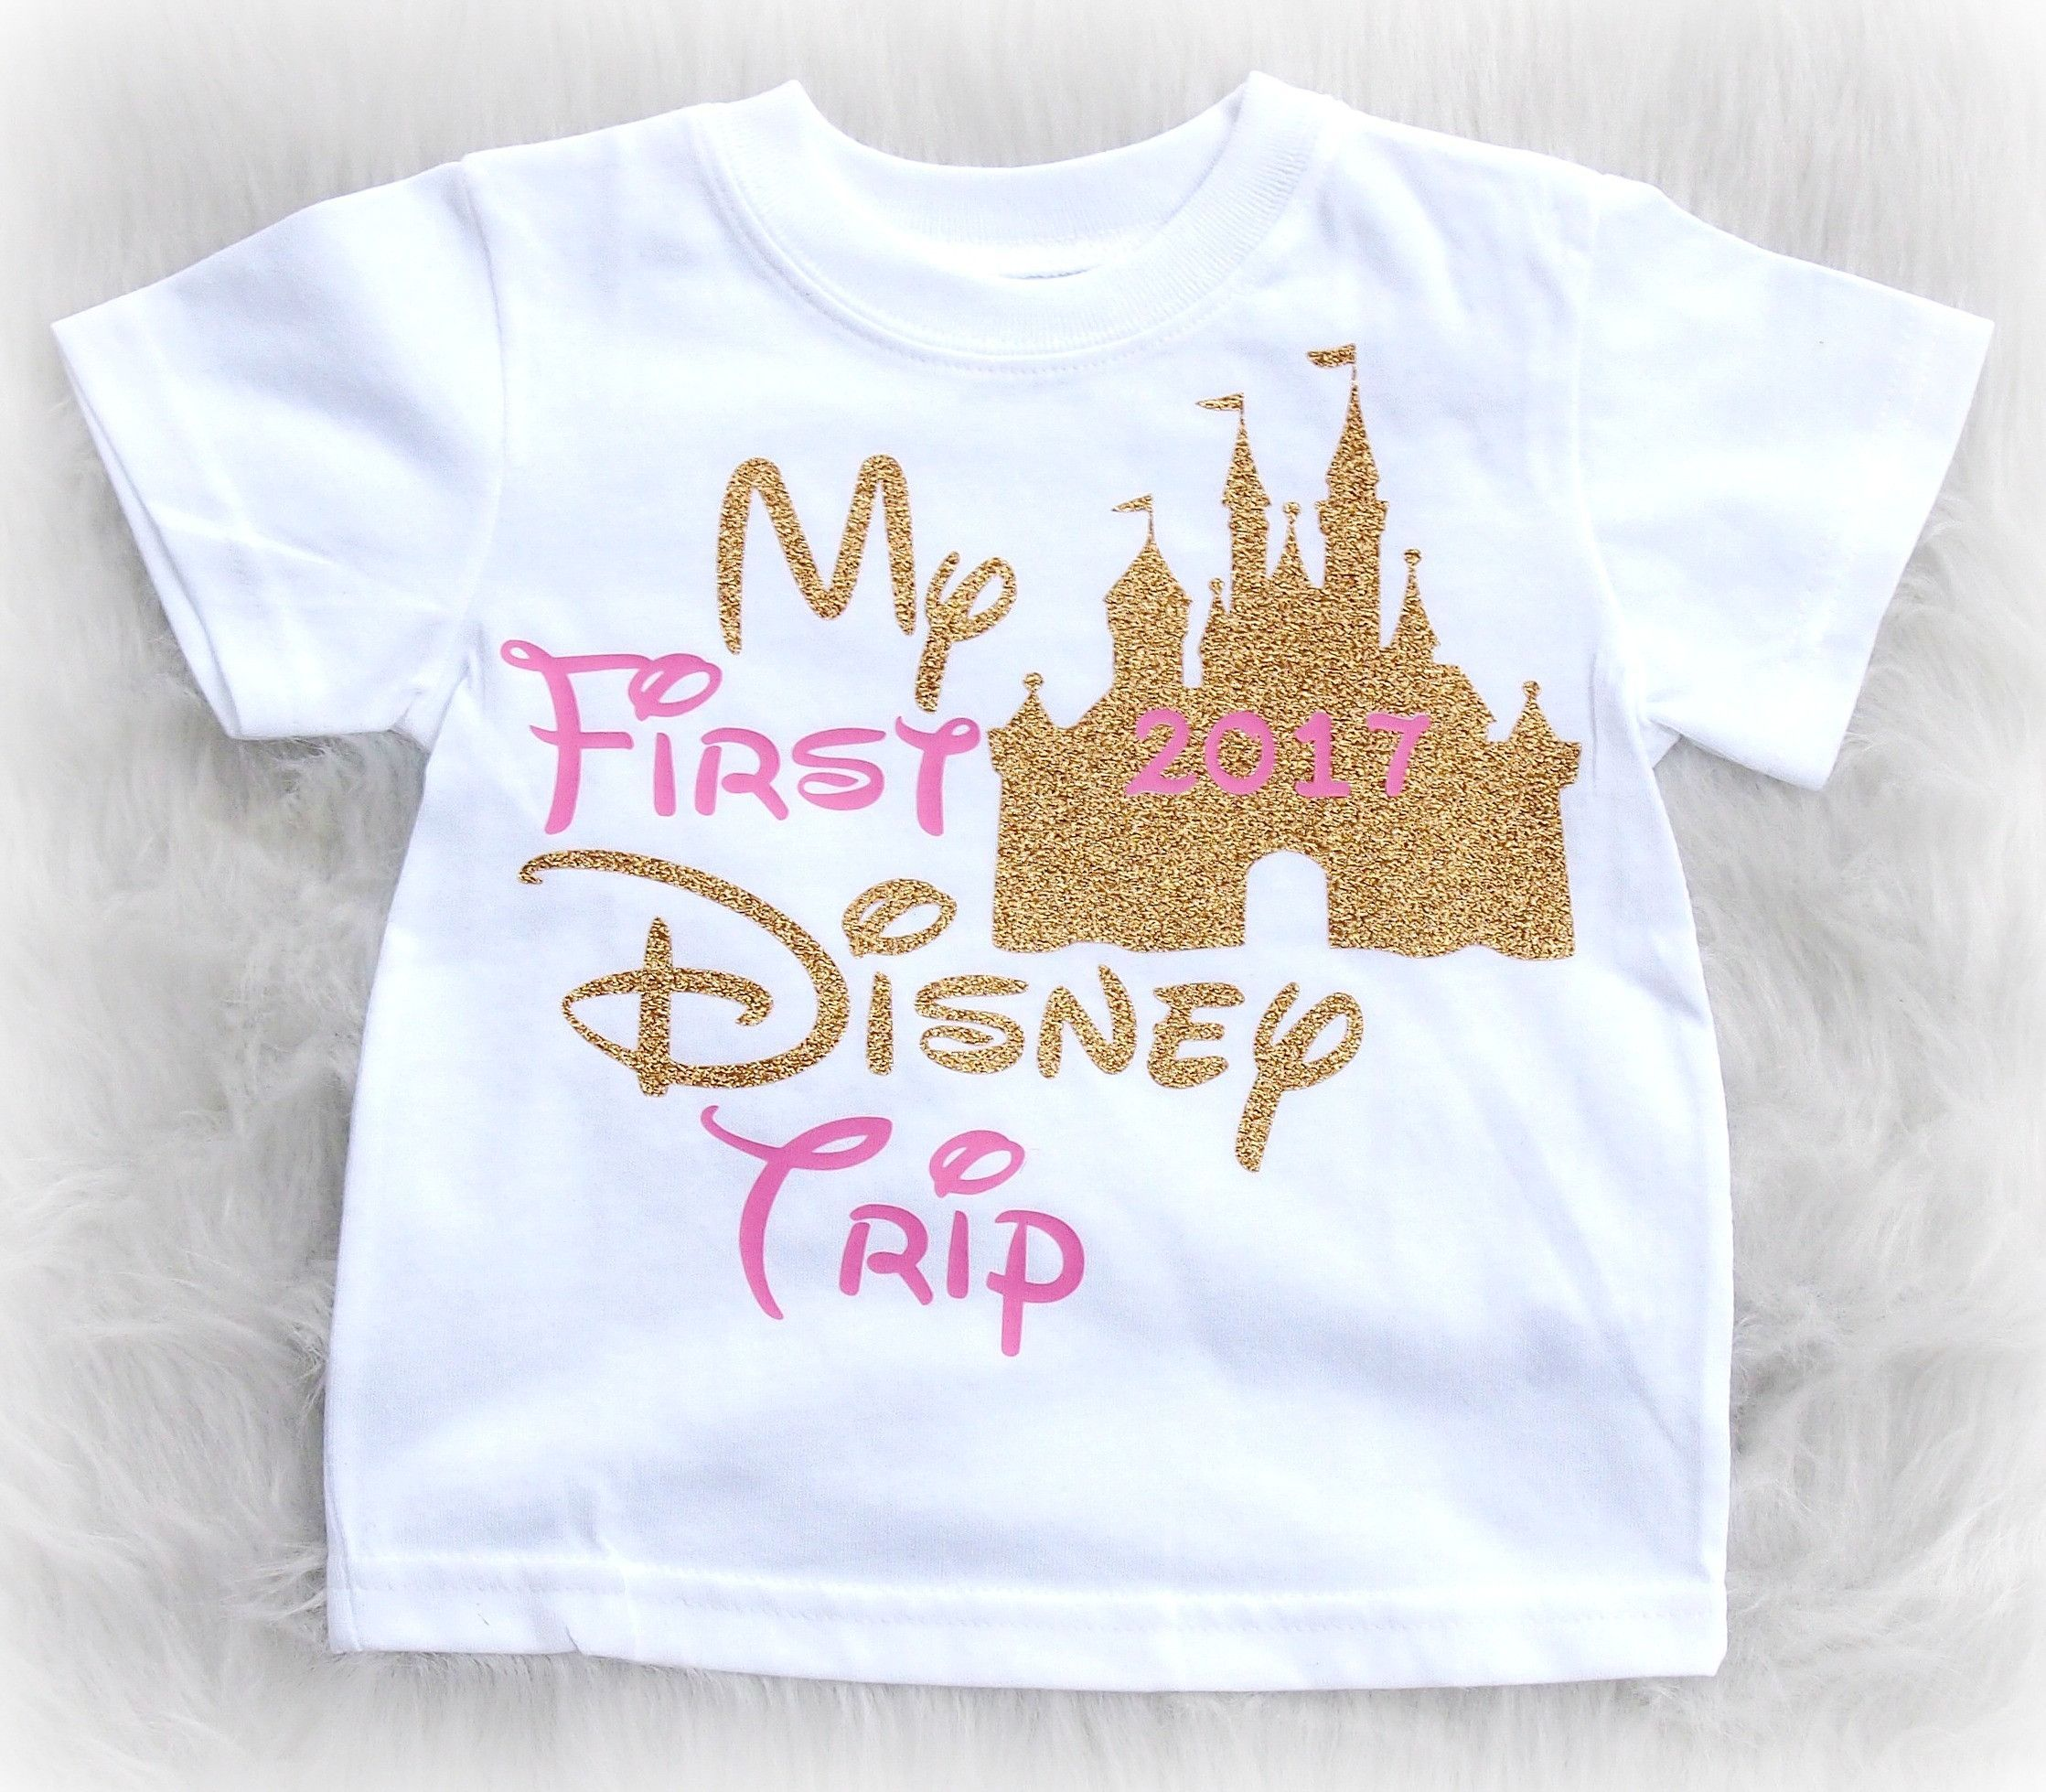 f355bd977cddc My First Disney Trip vacation shirt for infants and kids with pink ...